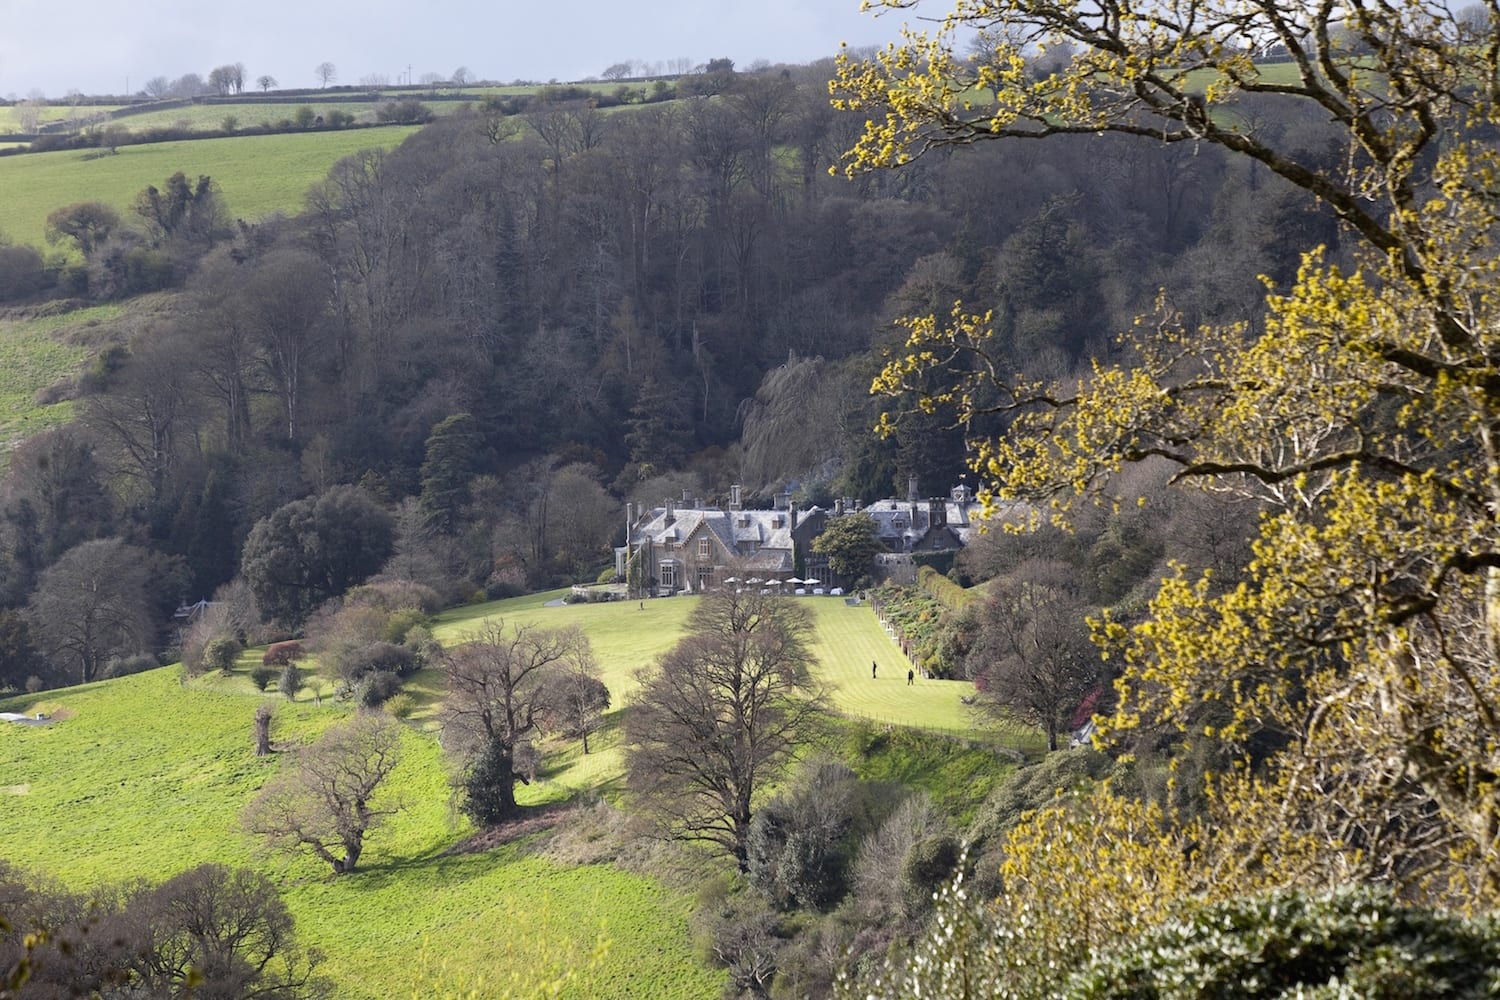 Endsleigh Hotel View from far